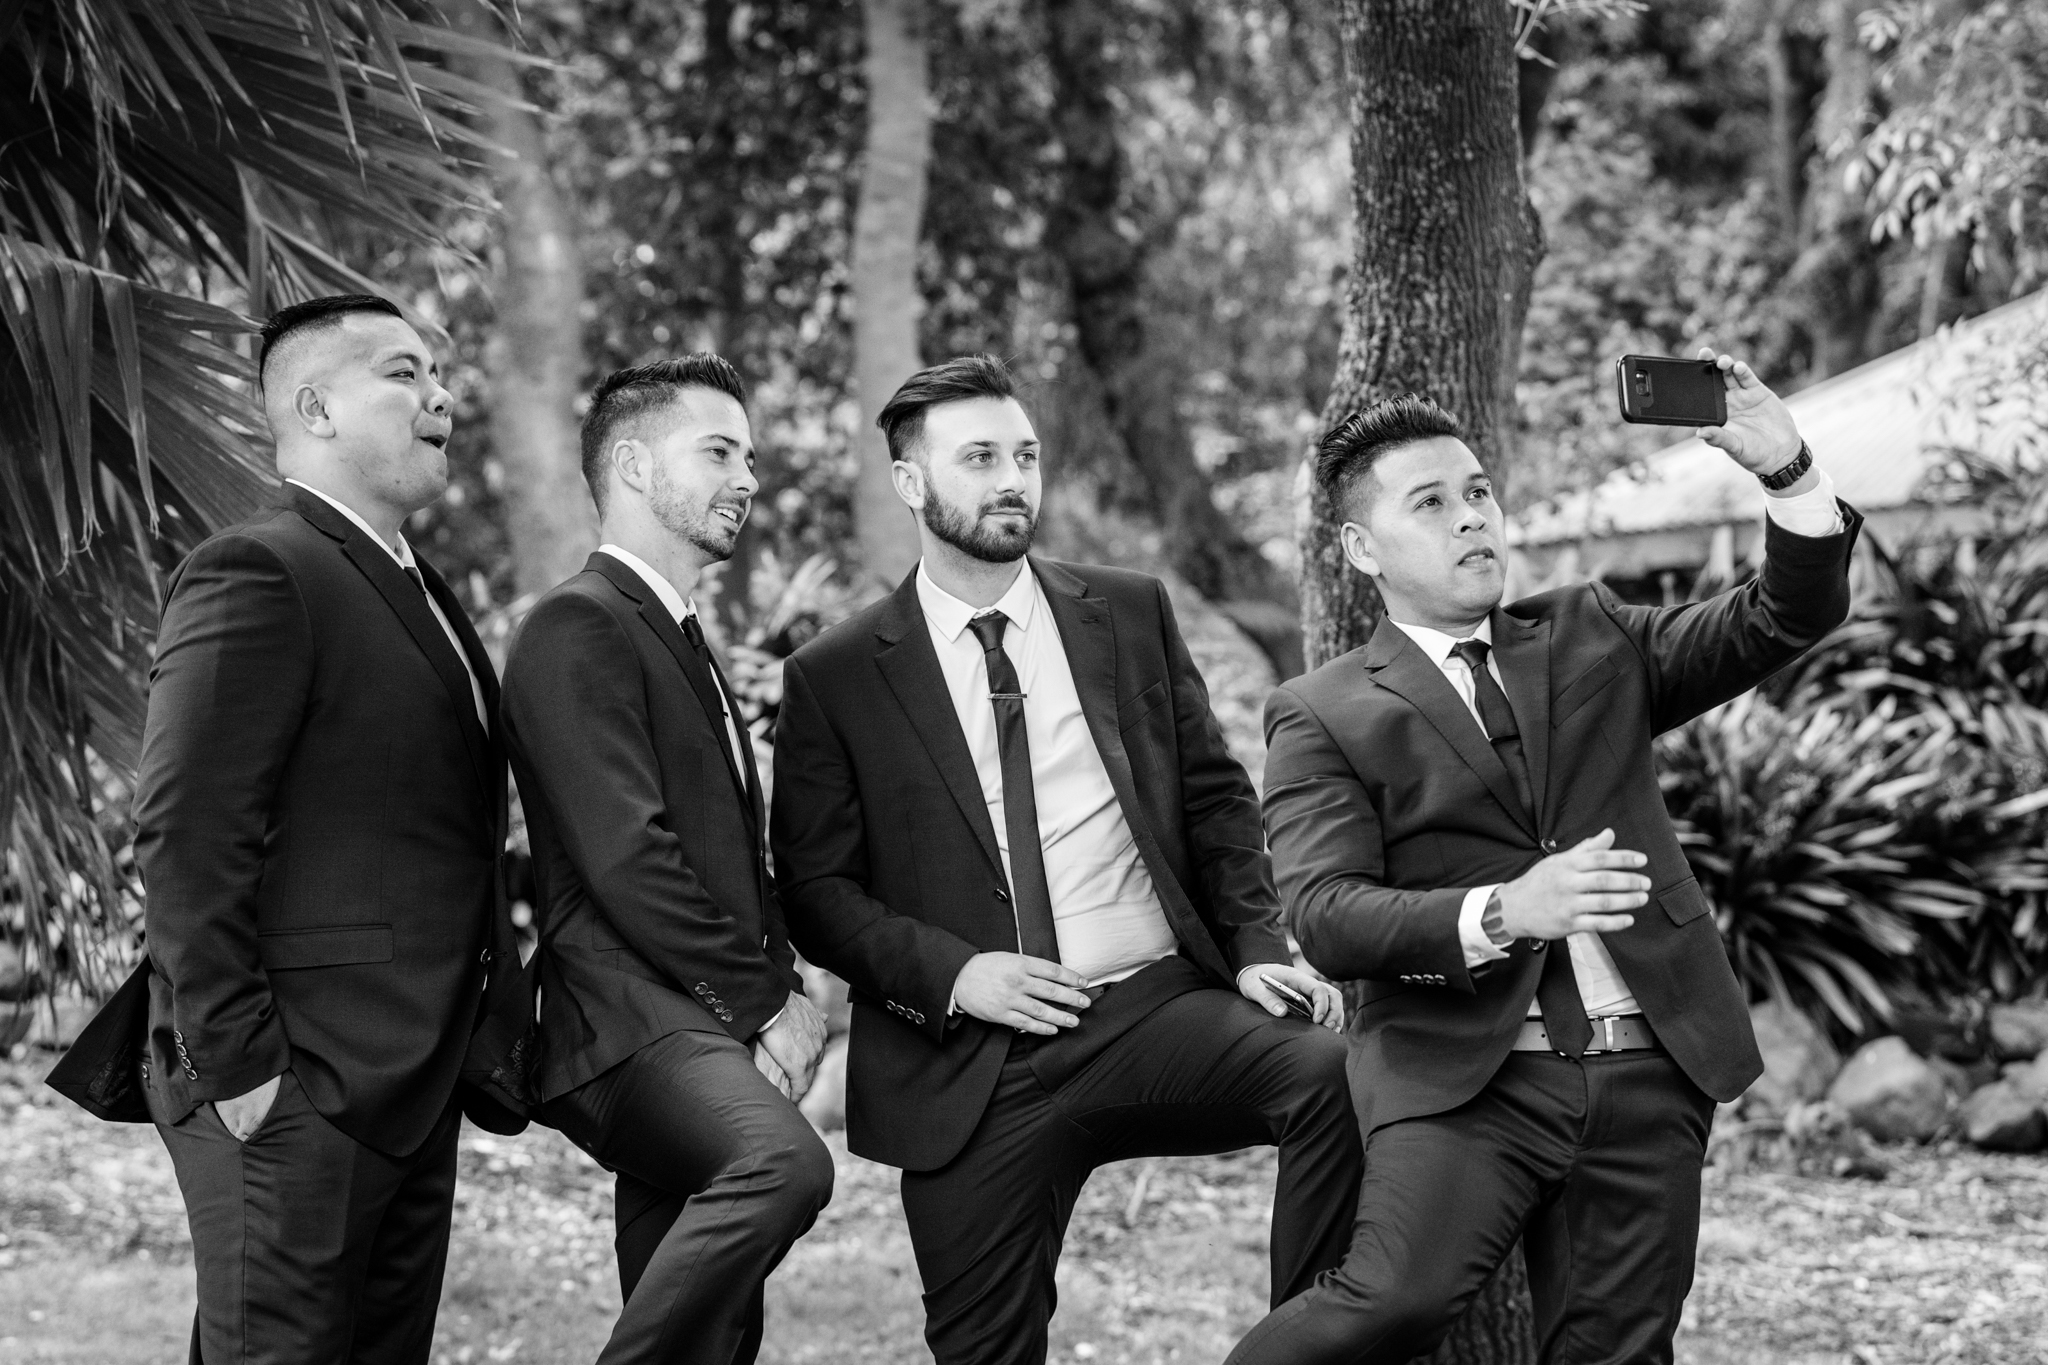 Groomsmen take time out for a Selfie.